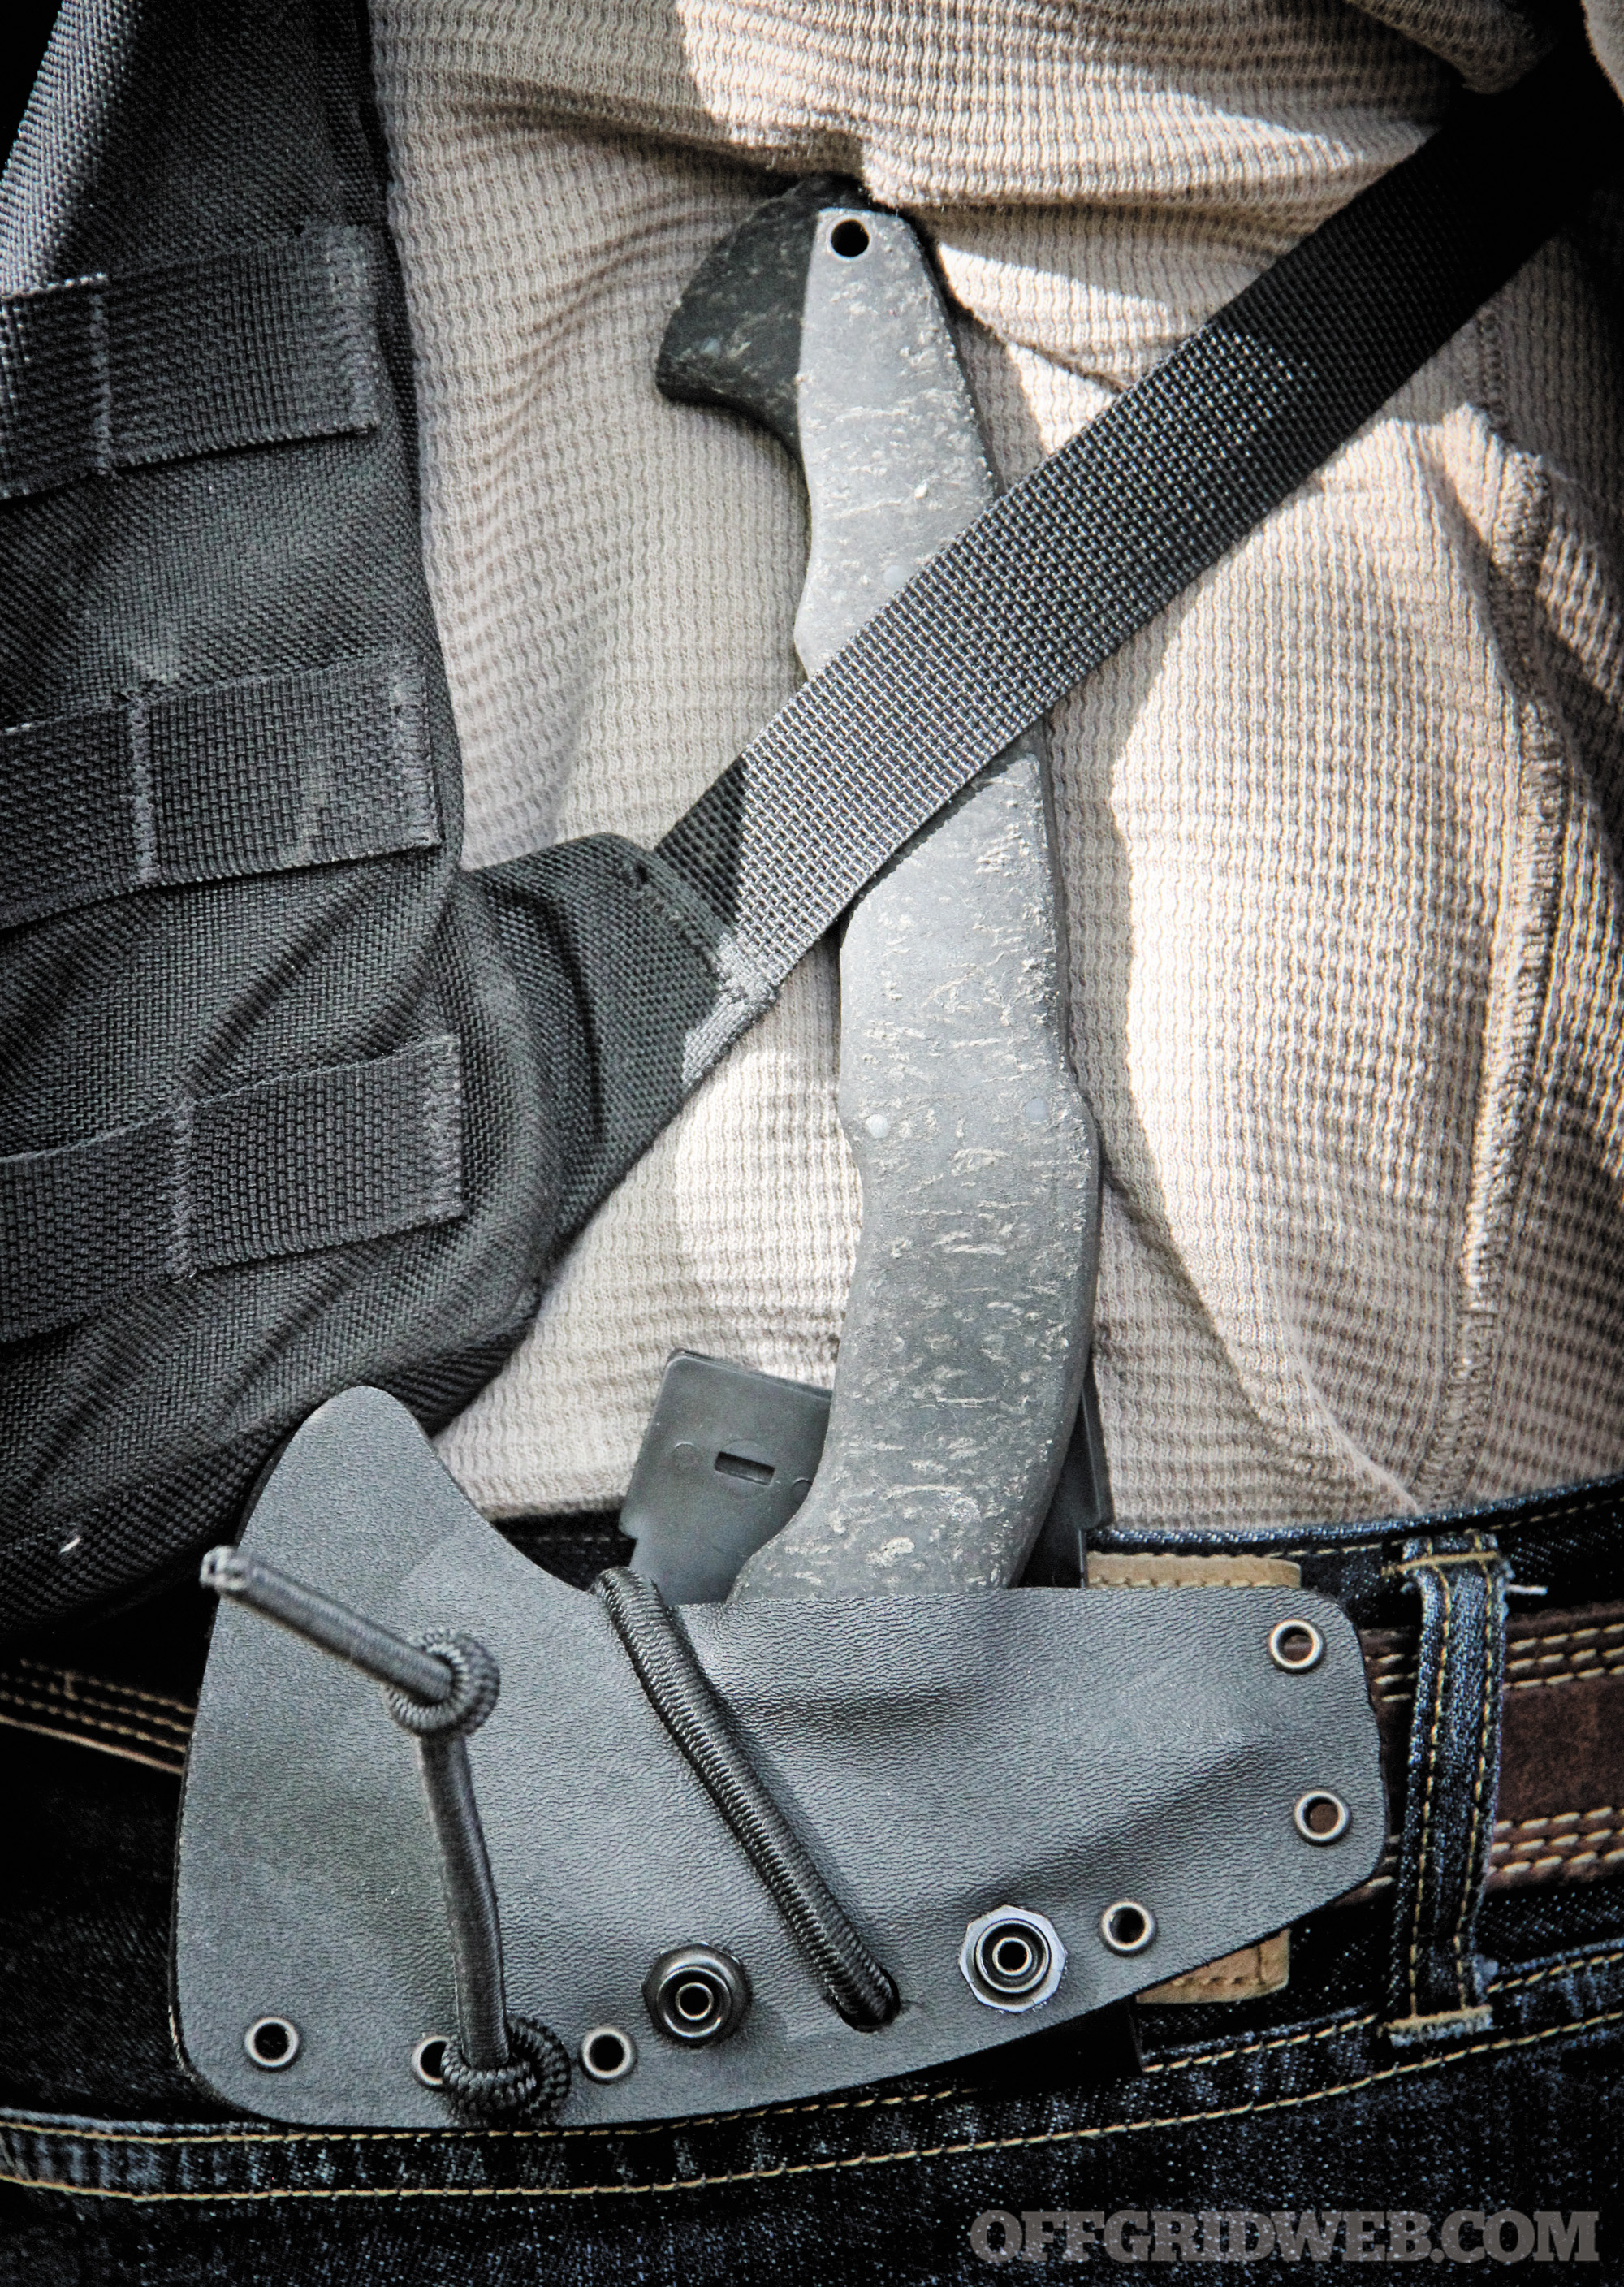 Inverted belt carry is one way to conceal the handle.